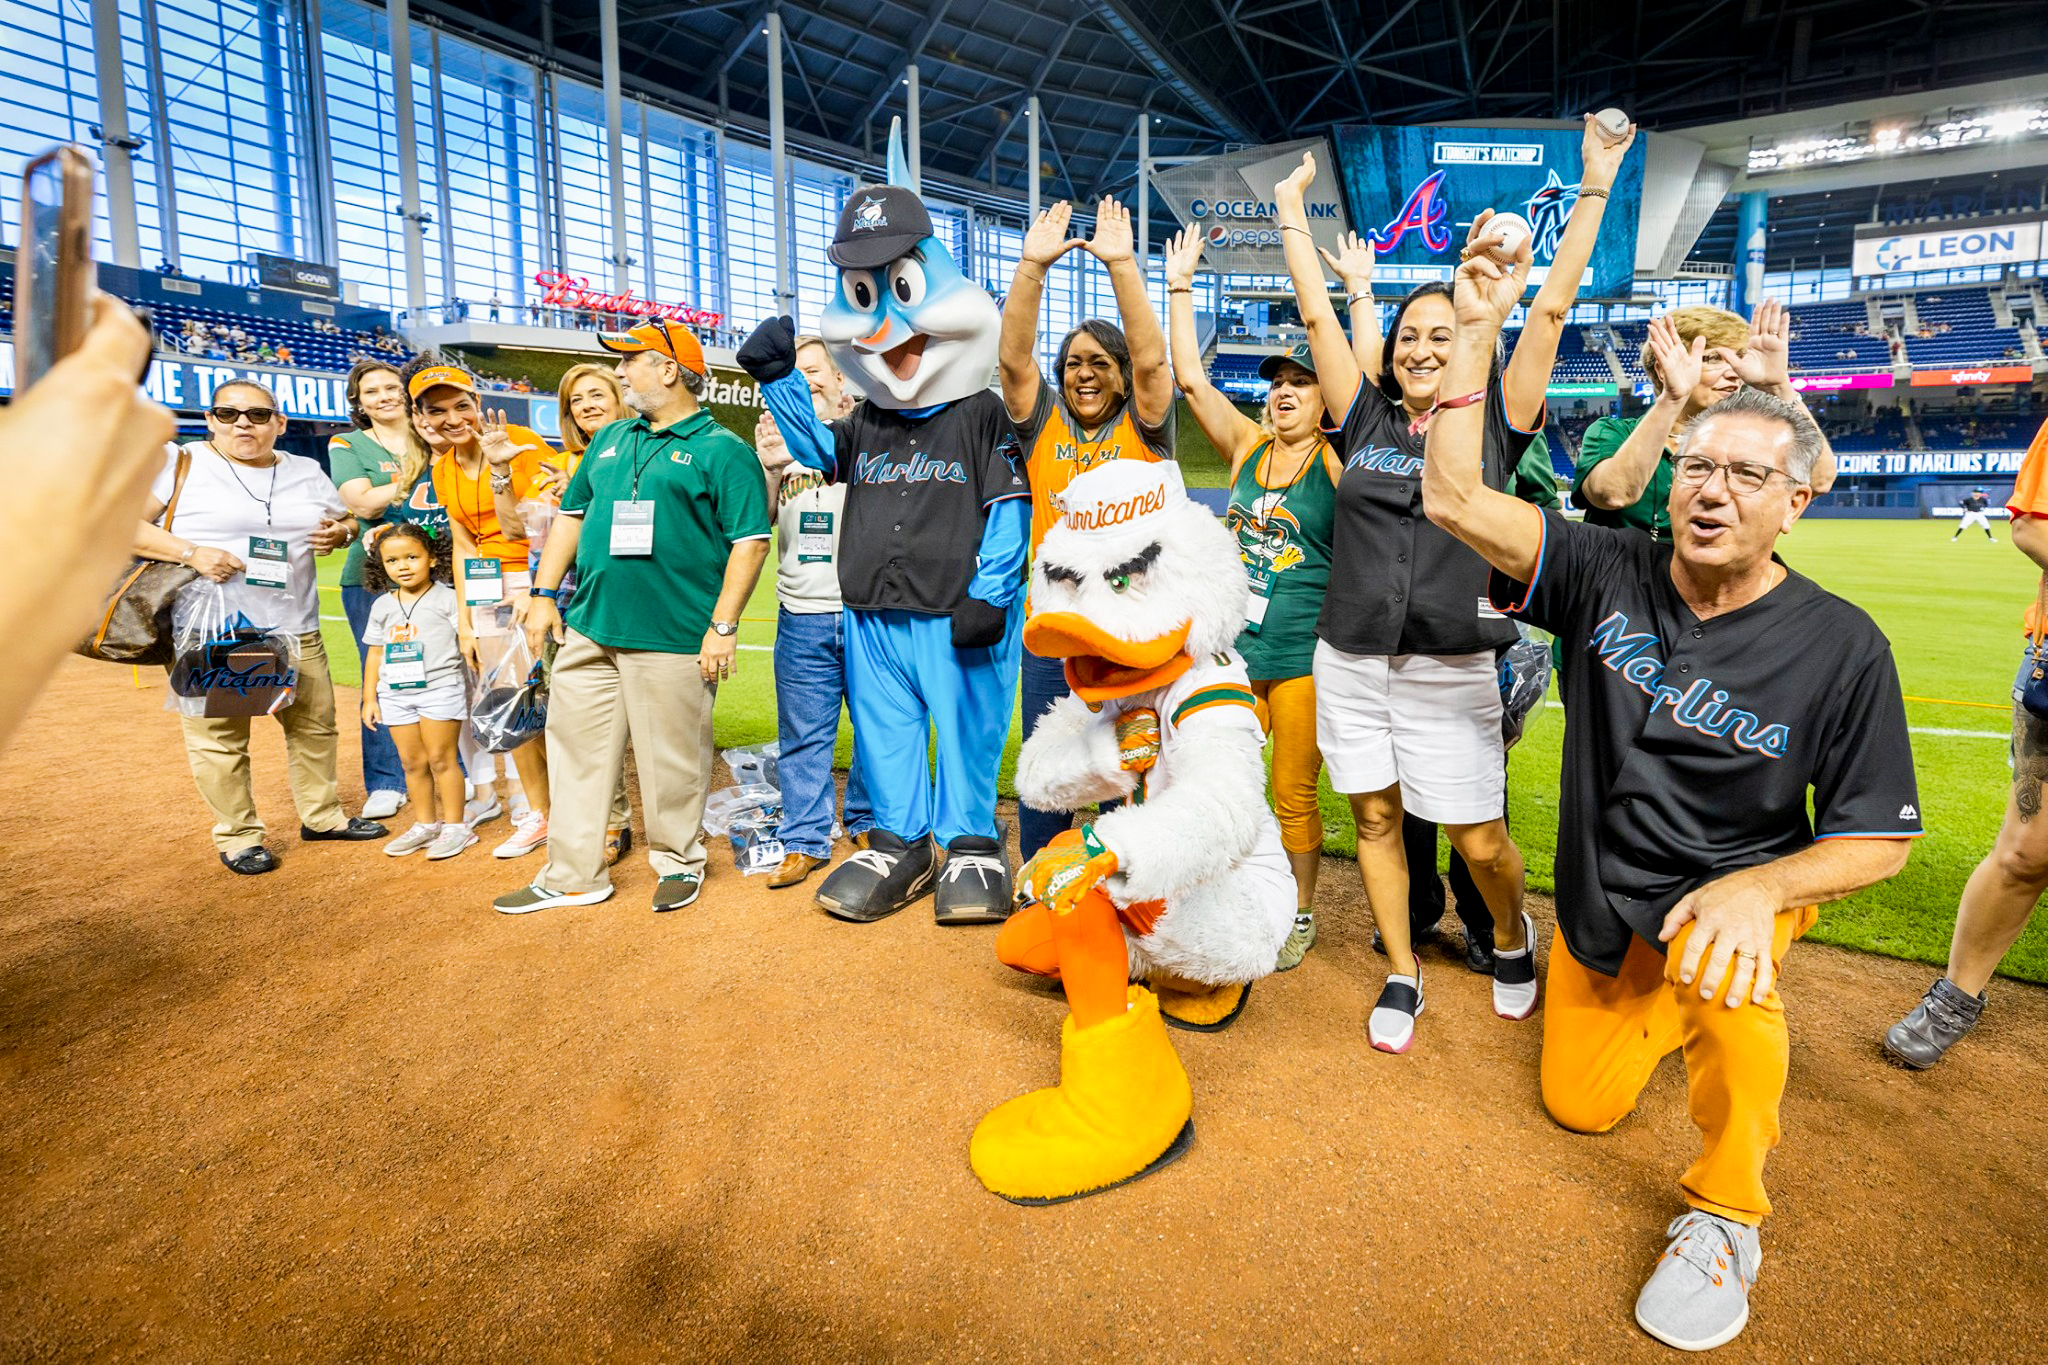 UM Employees at Marlins Day